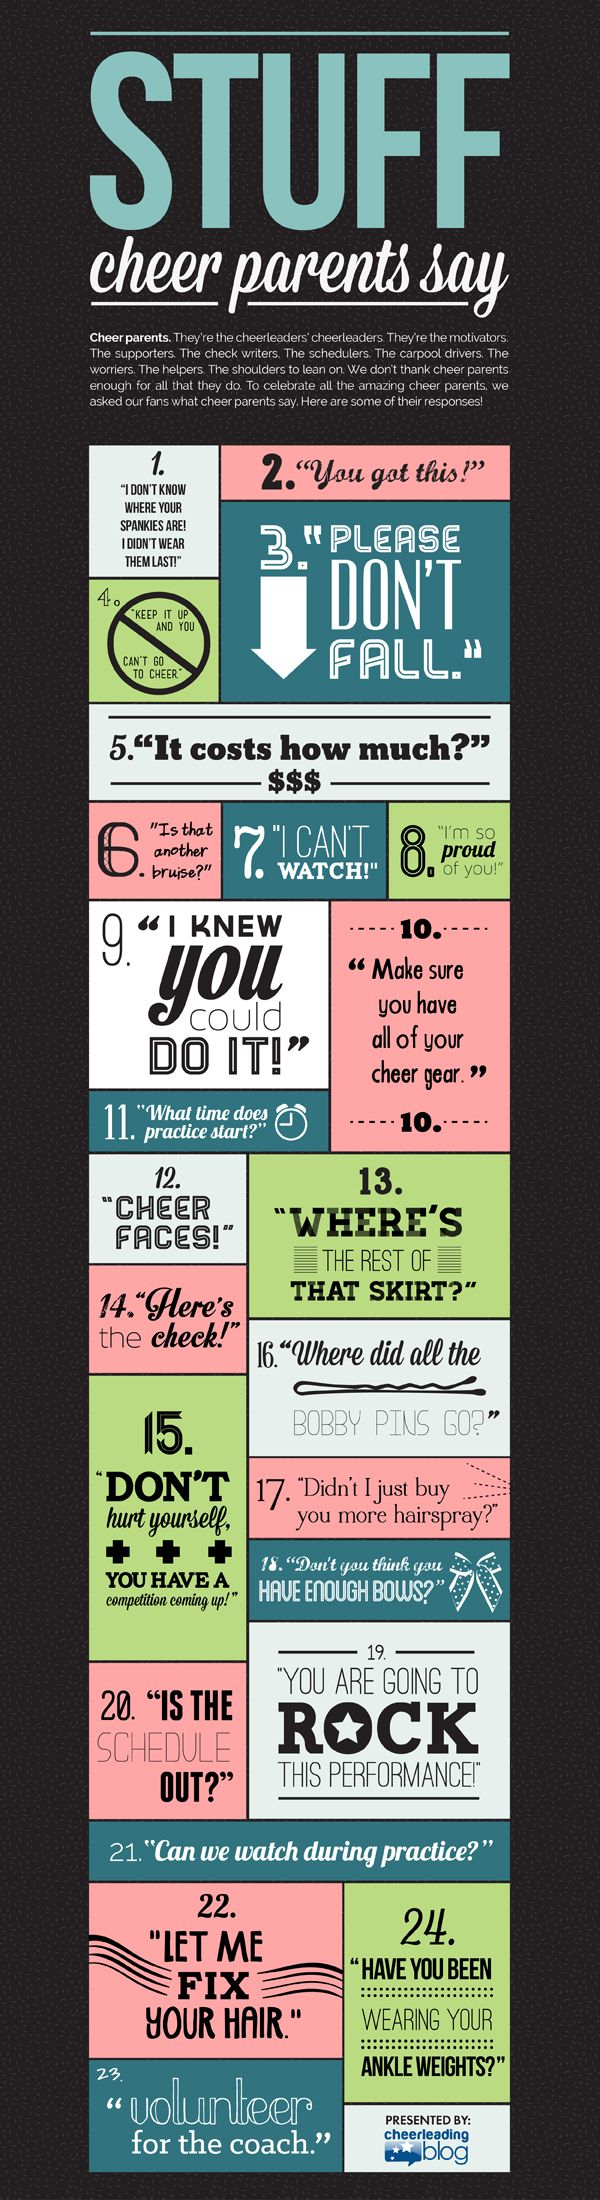 Stuff Cheer Parents Say - I know I have said everyone of these. And not to just my kid :/